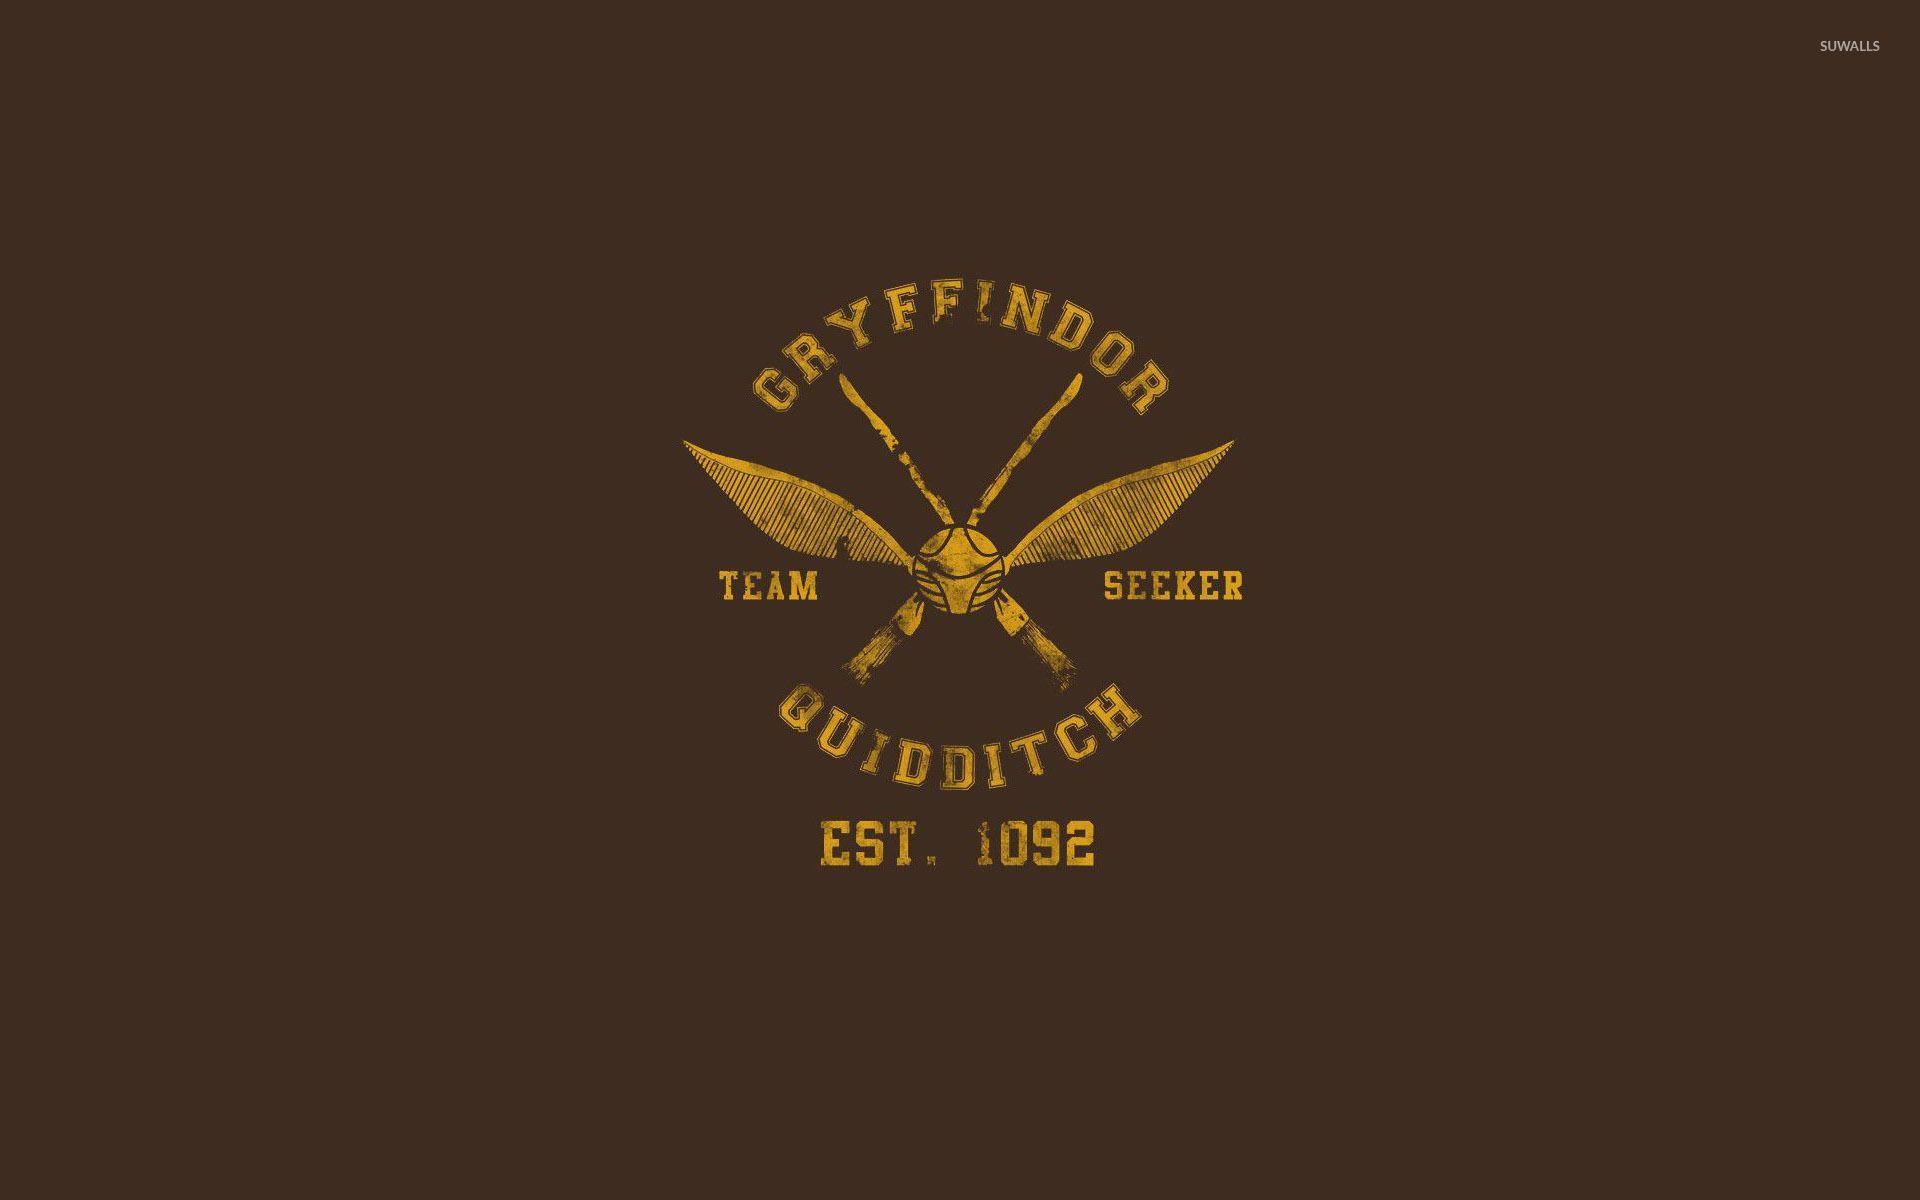 Quidditch Wallpapers Wallpaper Cave